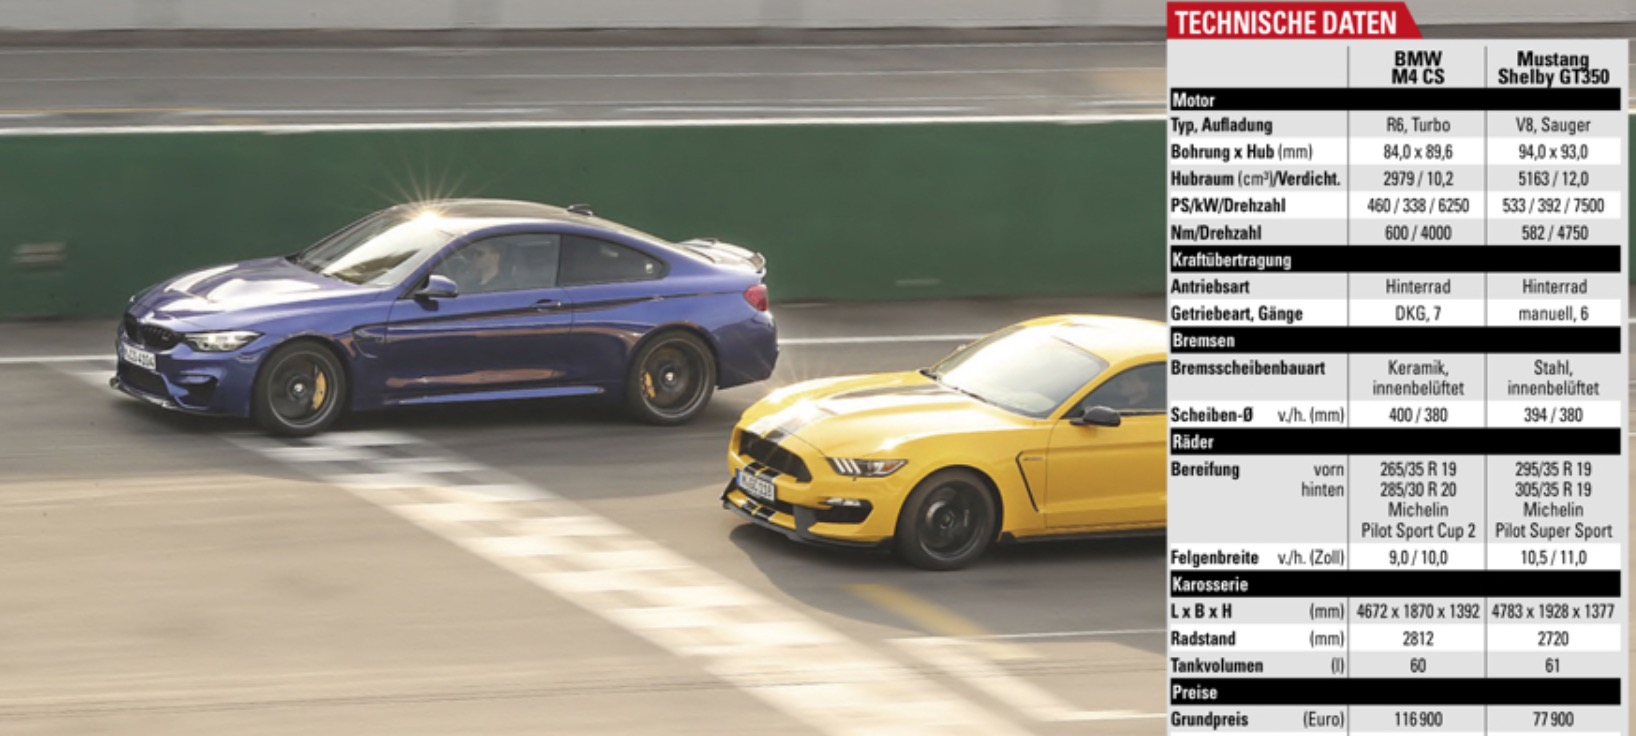 Sportauto m4 cs against mustang shelby gt350